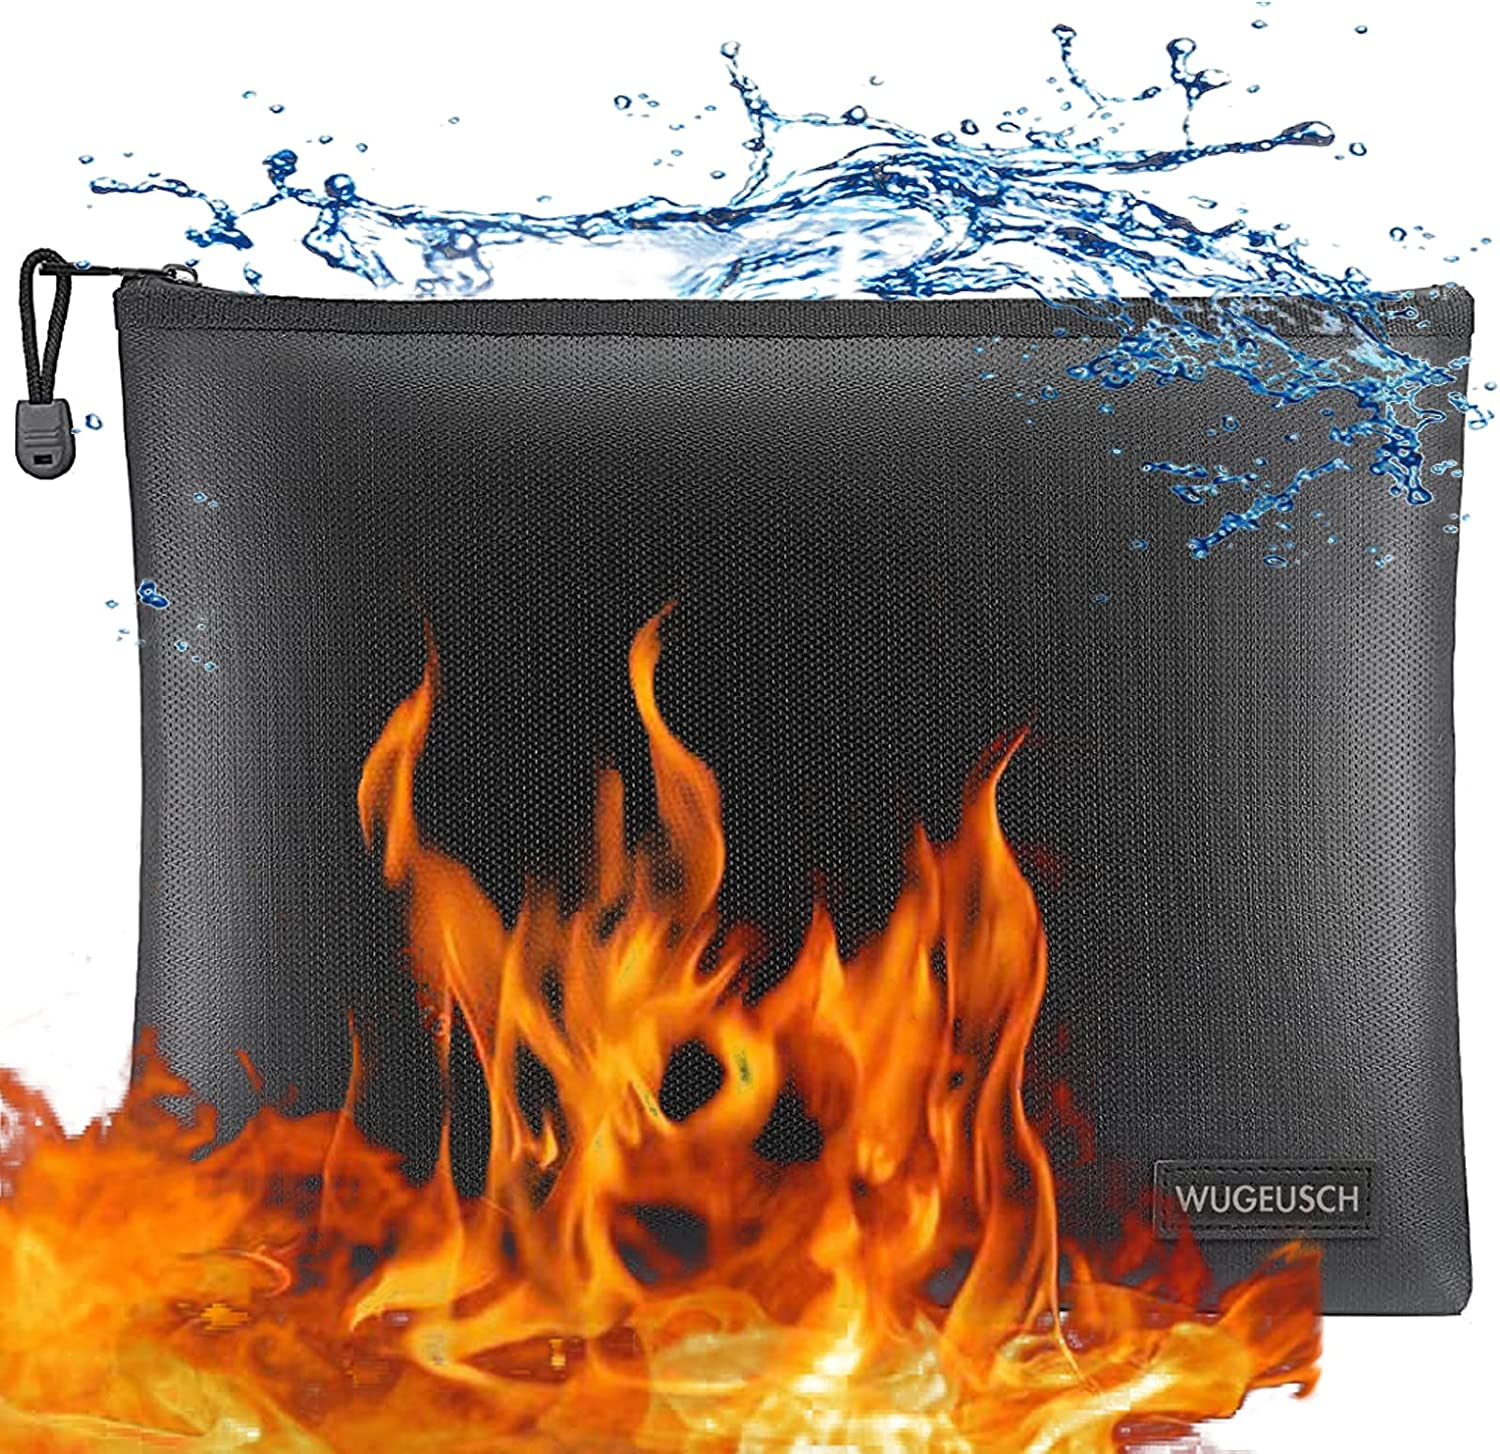 Fireproof Document Bag Waterproof Money Online limited product and Max 77% OFF Safe